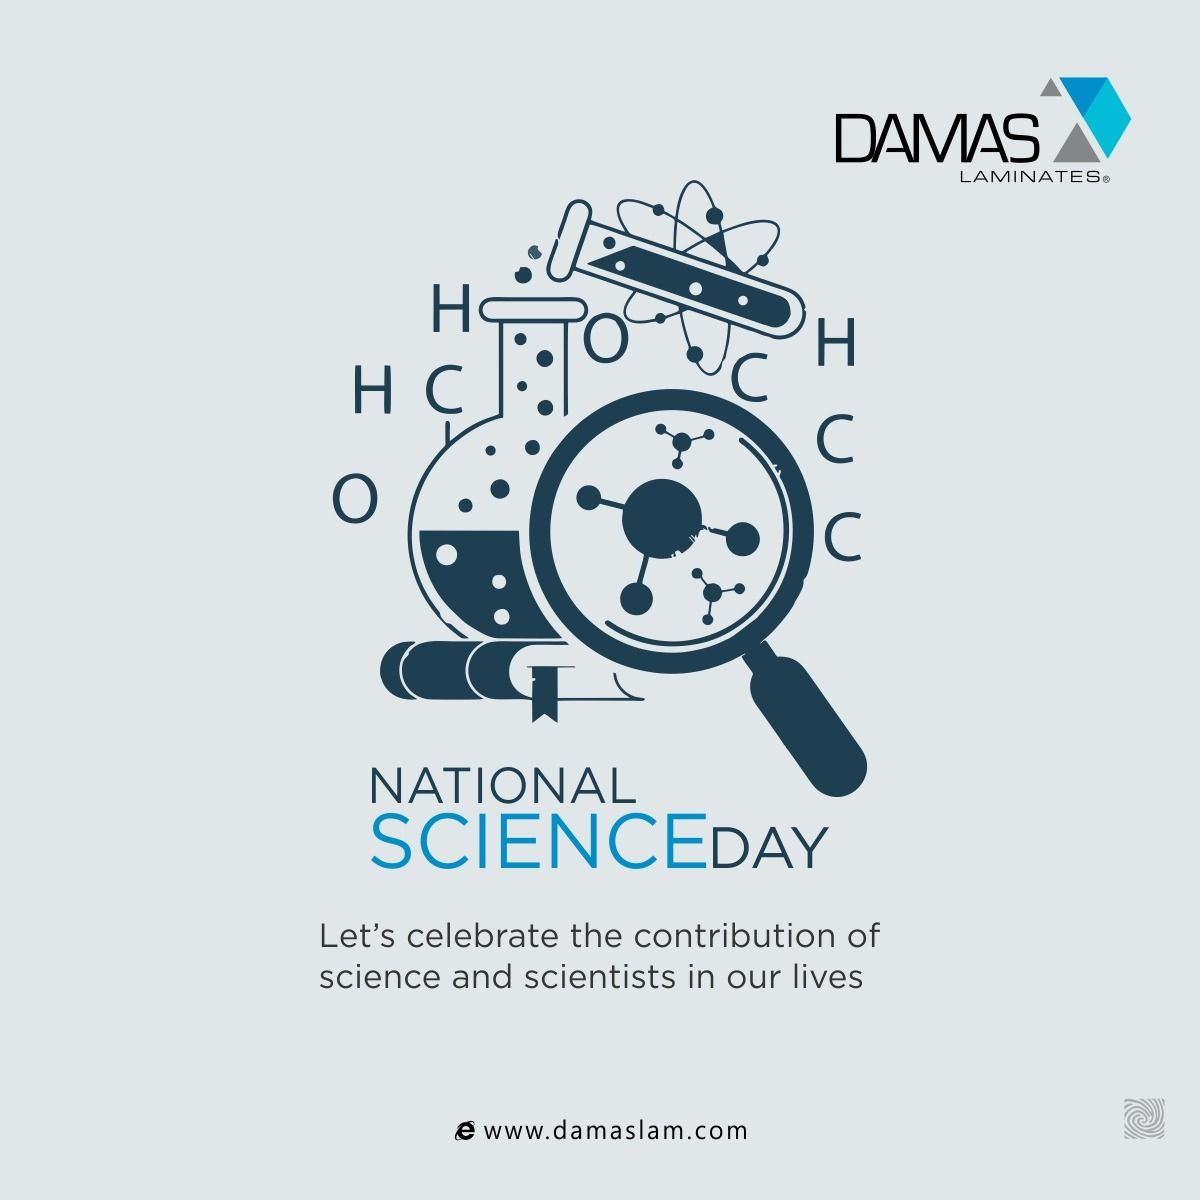 Let's celebrate the contribution of science and scientists